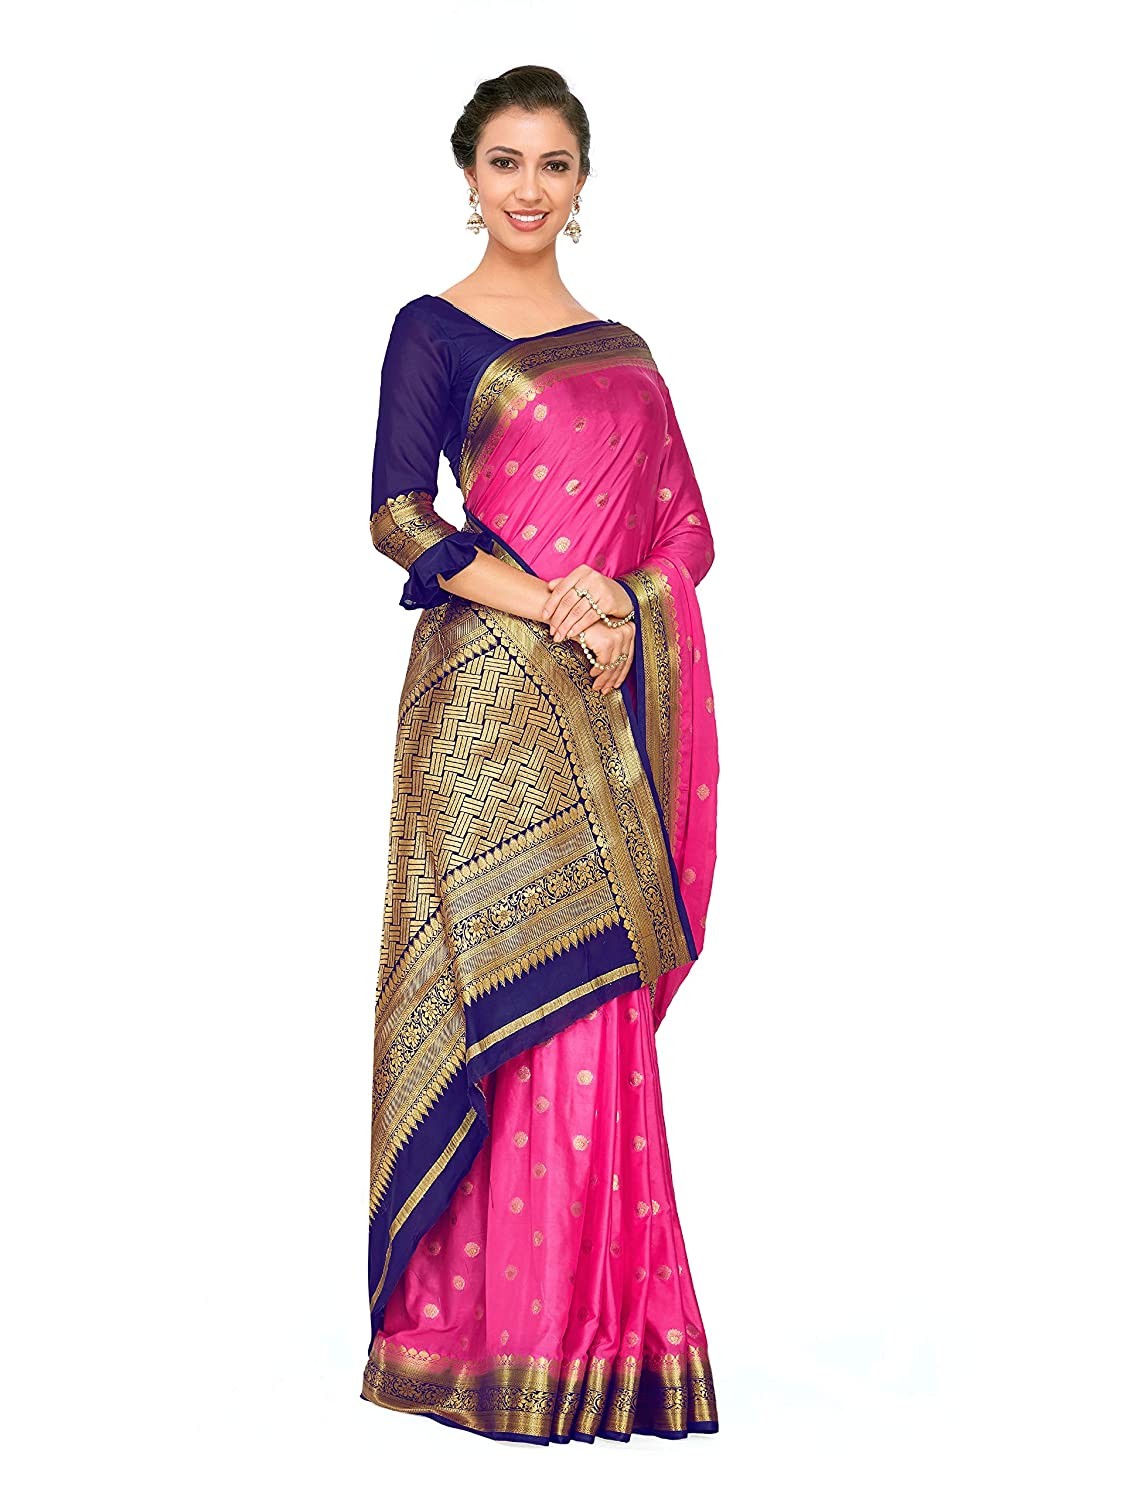 84308a59a00d4f Mimosa Art Crape silk Wedding saree Kanjivarm Pattu style With Contrast  Blouse Color  Pink (4272-2271-2D-GAJJ-NVY)  Amazon.in  Clothing    Accessories